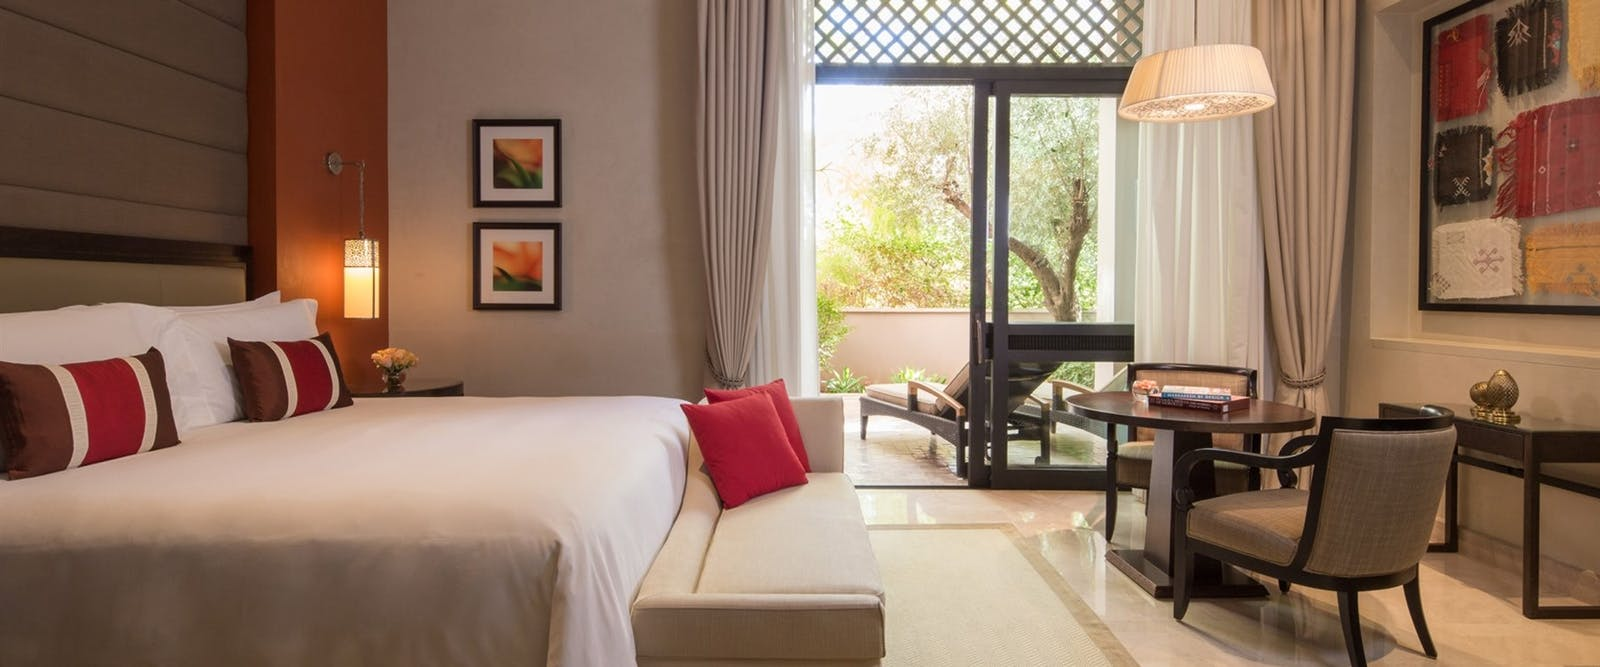 Accommodation at Four Seasons Marrakech, Morocco